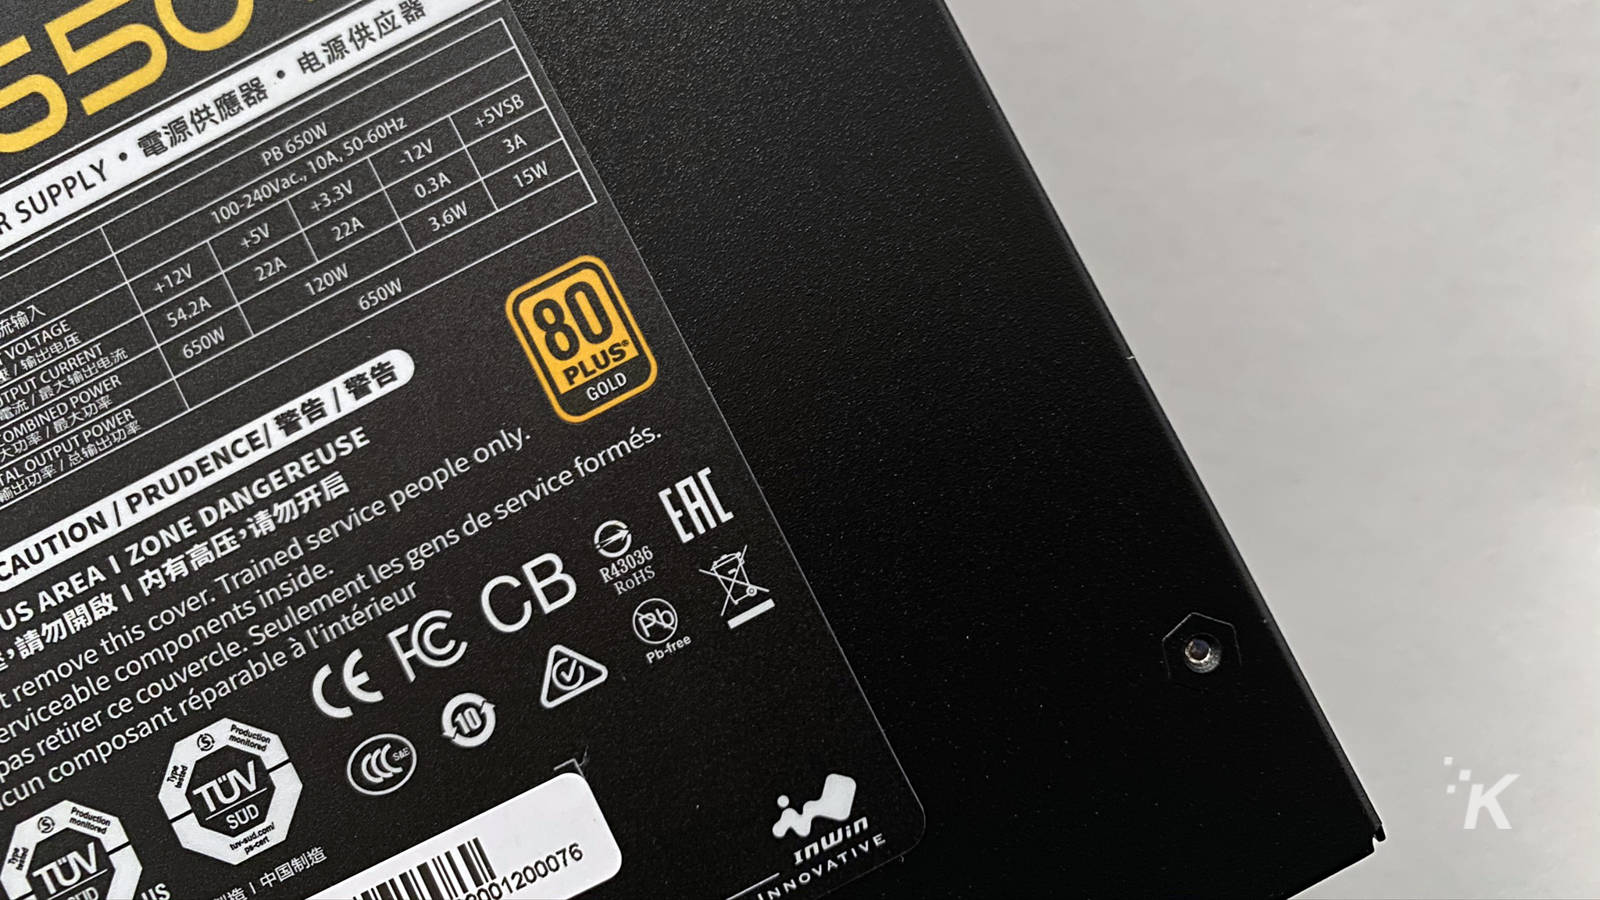 computer power supply rating label